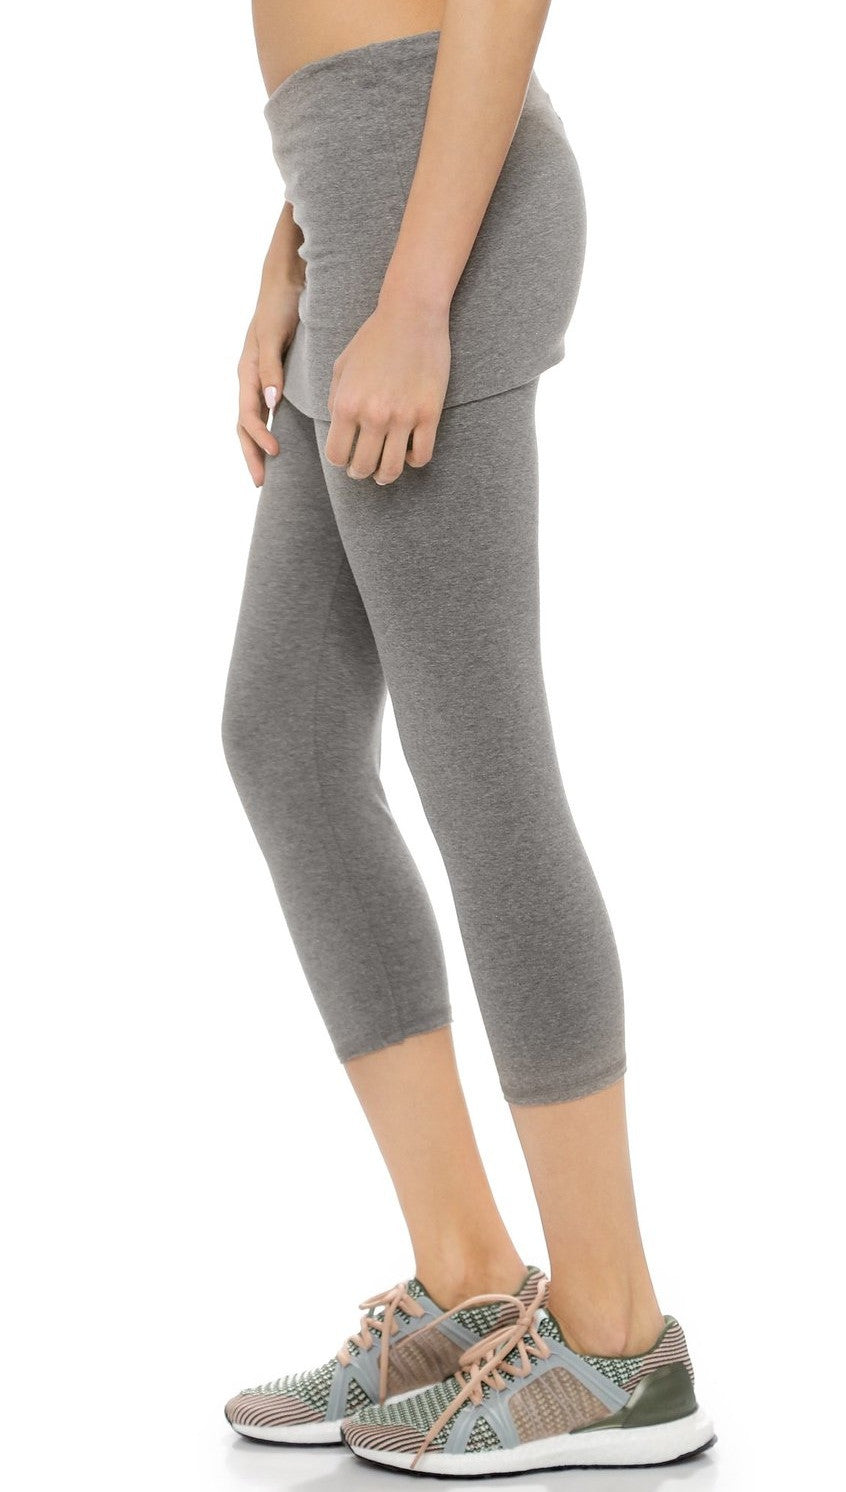 So Low Foldover Skirt Crop Leggings Medium Heather Grey